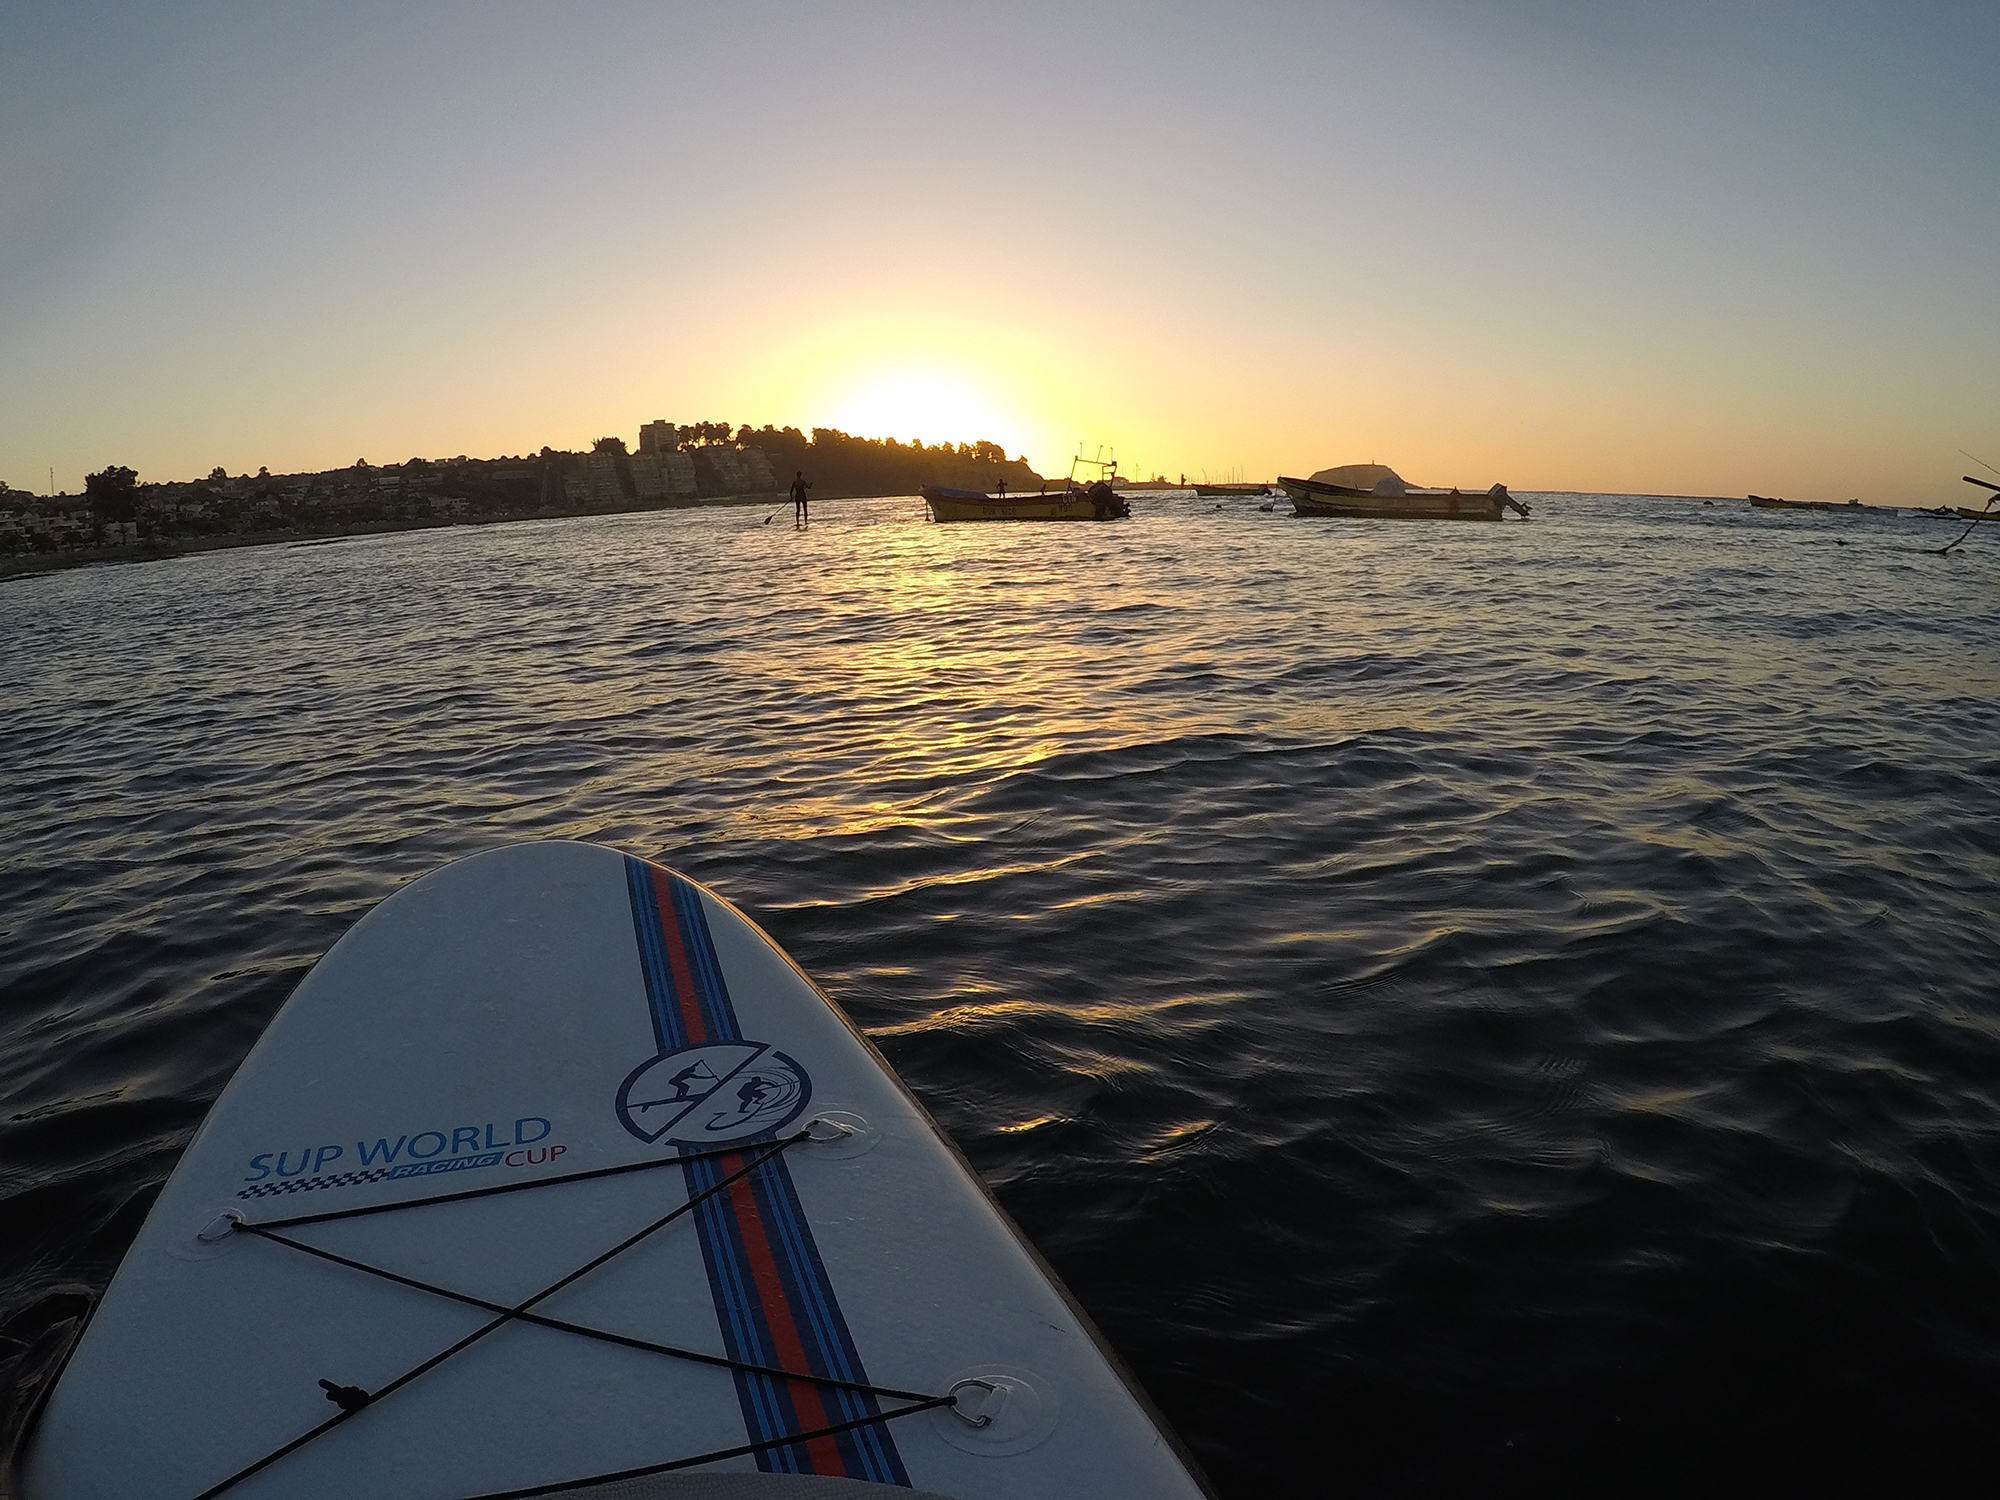 the tip of a paddle board on the water with the sun setting.